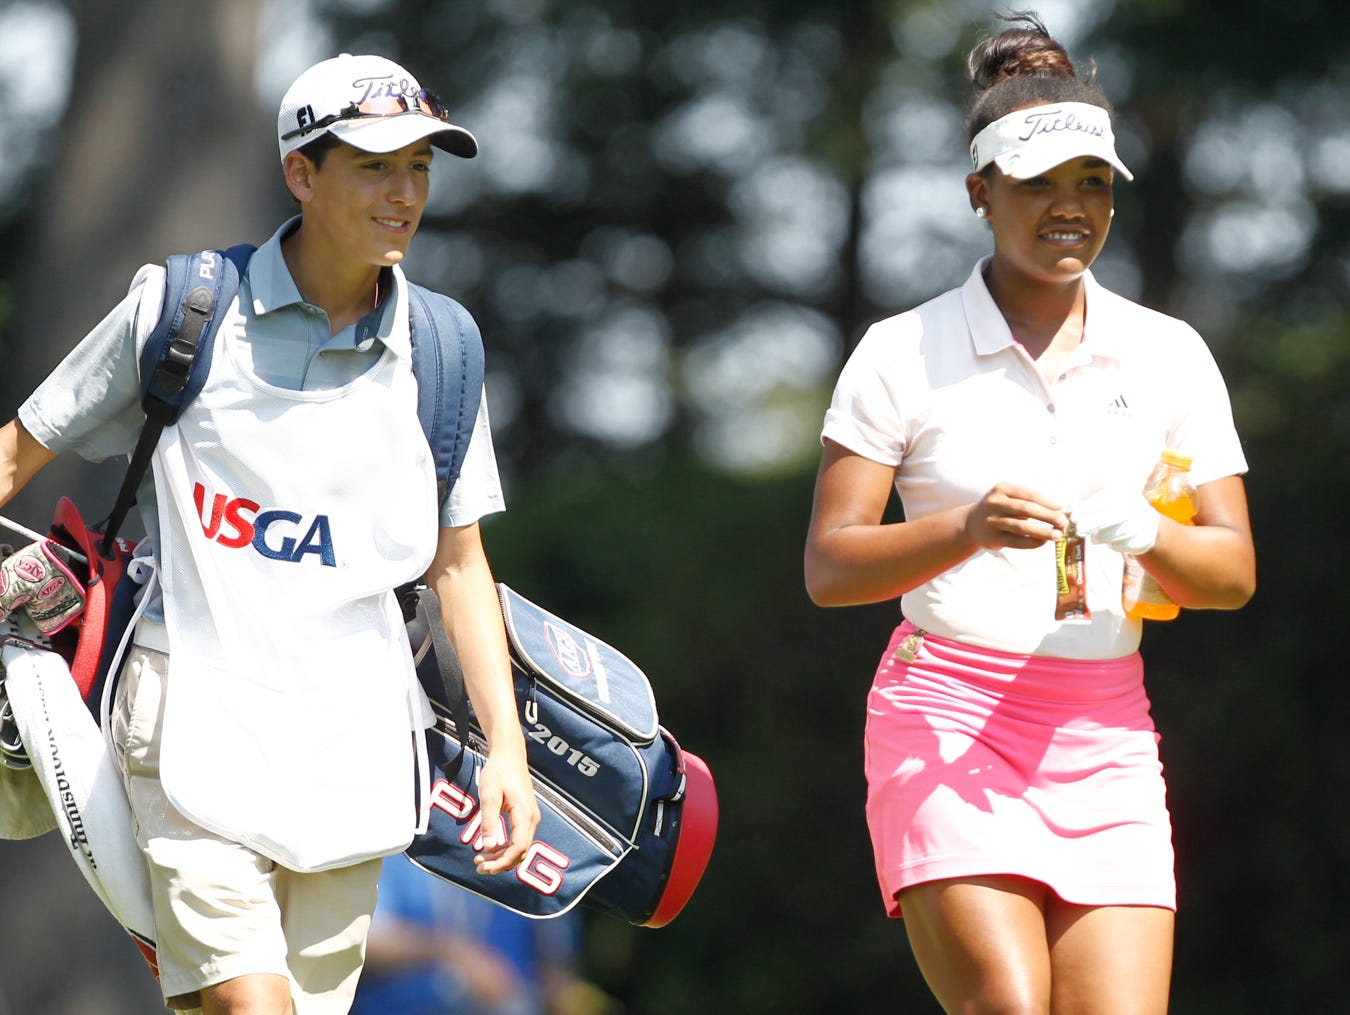 Kyra Cox, 16 from South Salem, with caddie Jacob Gonzalez, walks down a fairway in the 68th U. S. Girls Junior Amateur Championship at The Ridgewood Country Club in Paramus on Monday, July 18, 2016. Kyra Cox recently played in the 2016 Drive, Chip & Putt National Championship at Augusta National and was the Metropolitan PGA Player of the Year three consecutive times from 2013 to 2015.